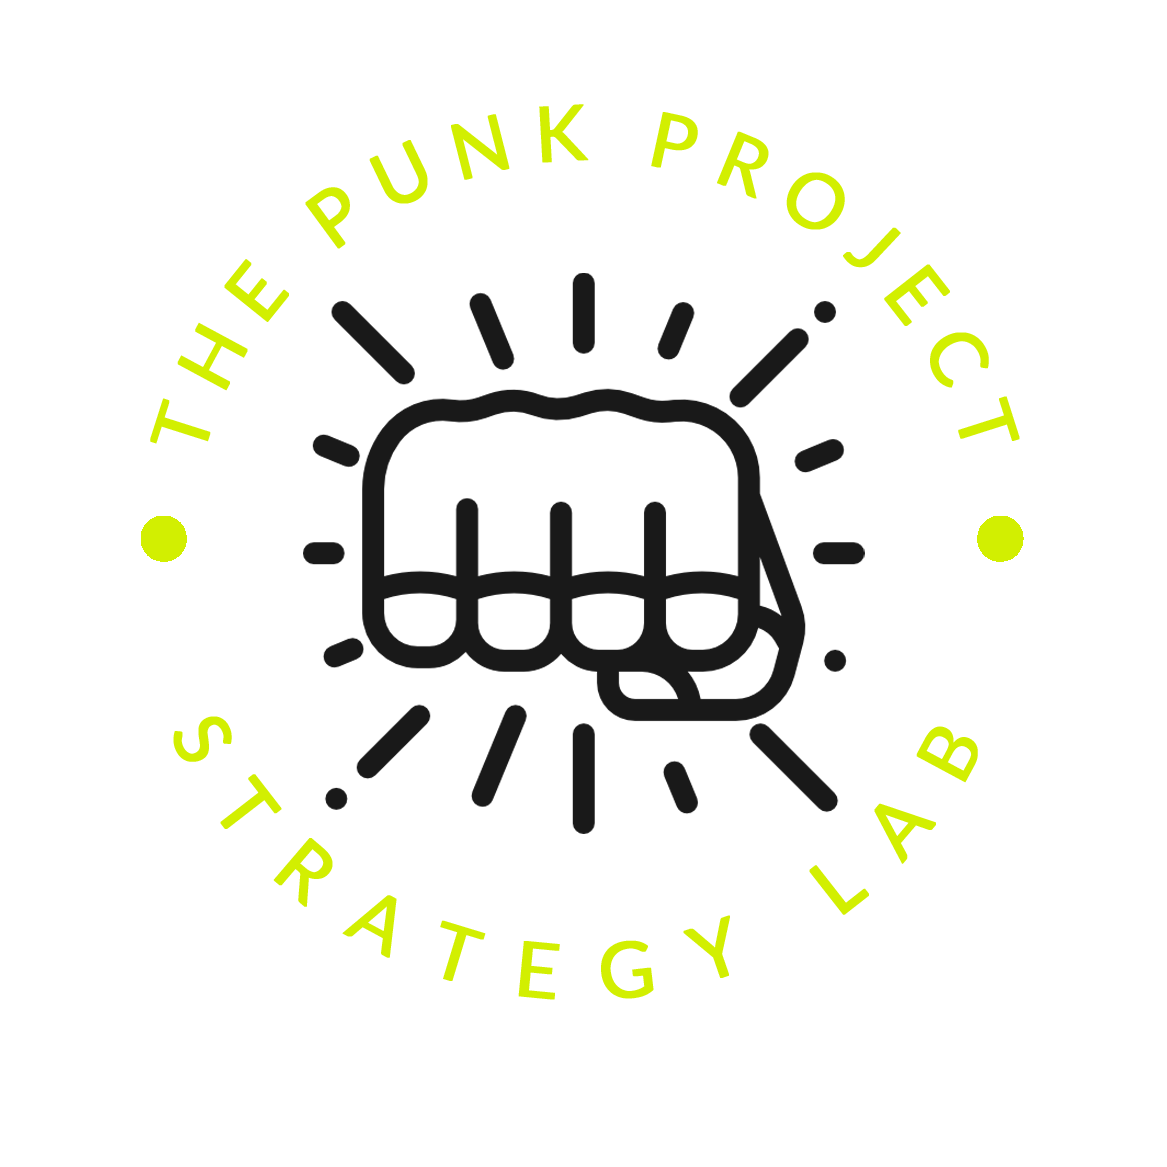 Phase Three: - Tweaker Beaker - make it, launch it, test it.No time for thumb-twiddling or overthinking - we're launching your offers now so we can start getting real feedback and data on how to make them even better before we're done working together.